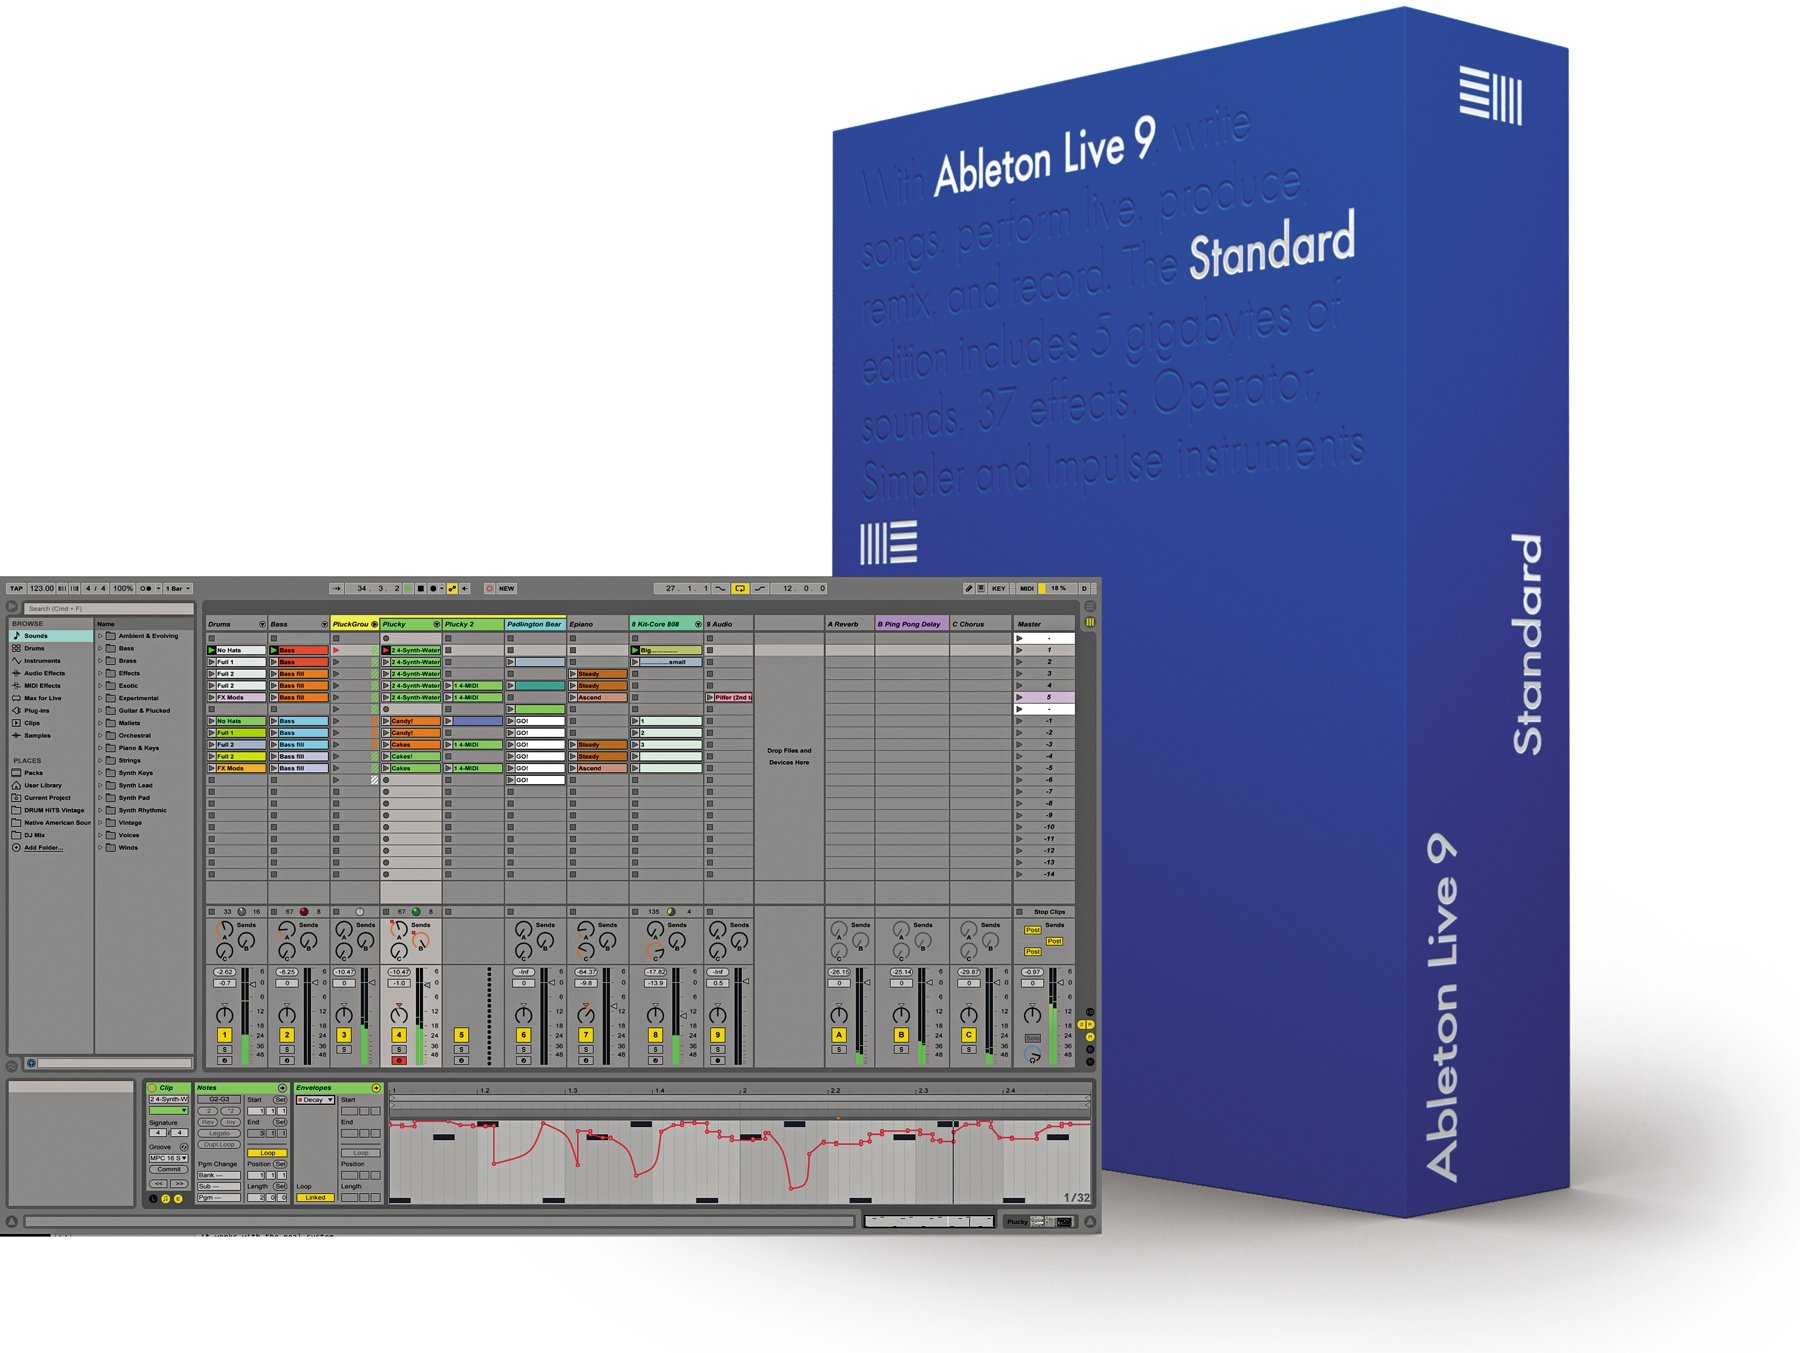 ableton live 9 standard upgrade from live 9 lite download kpodj. Black Bedroom Furniture Sets. Home Design Ideas